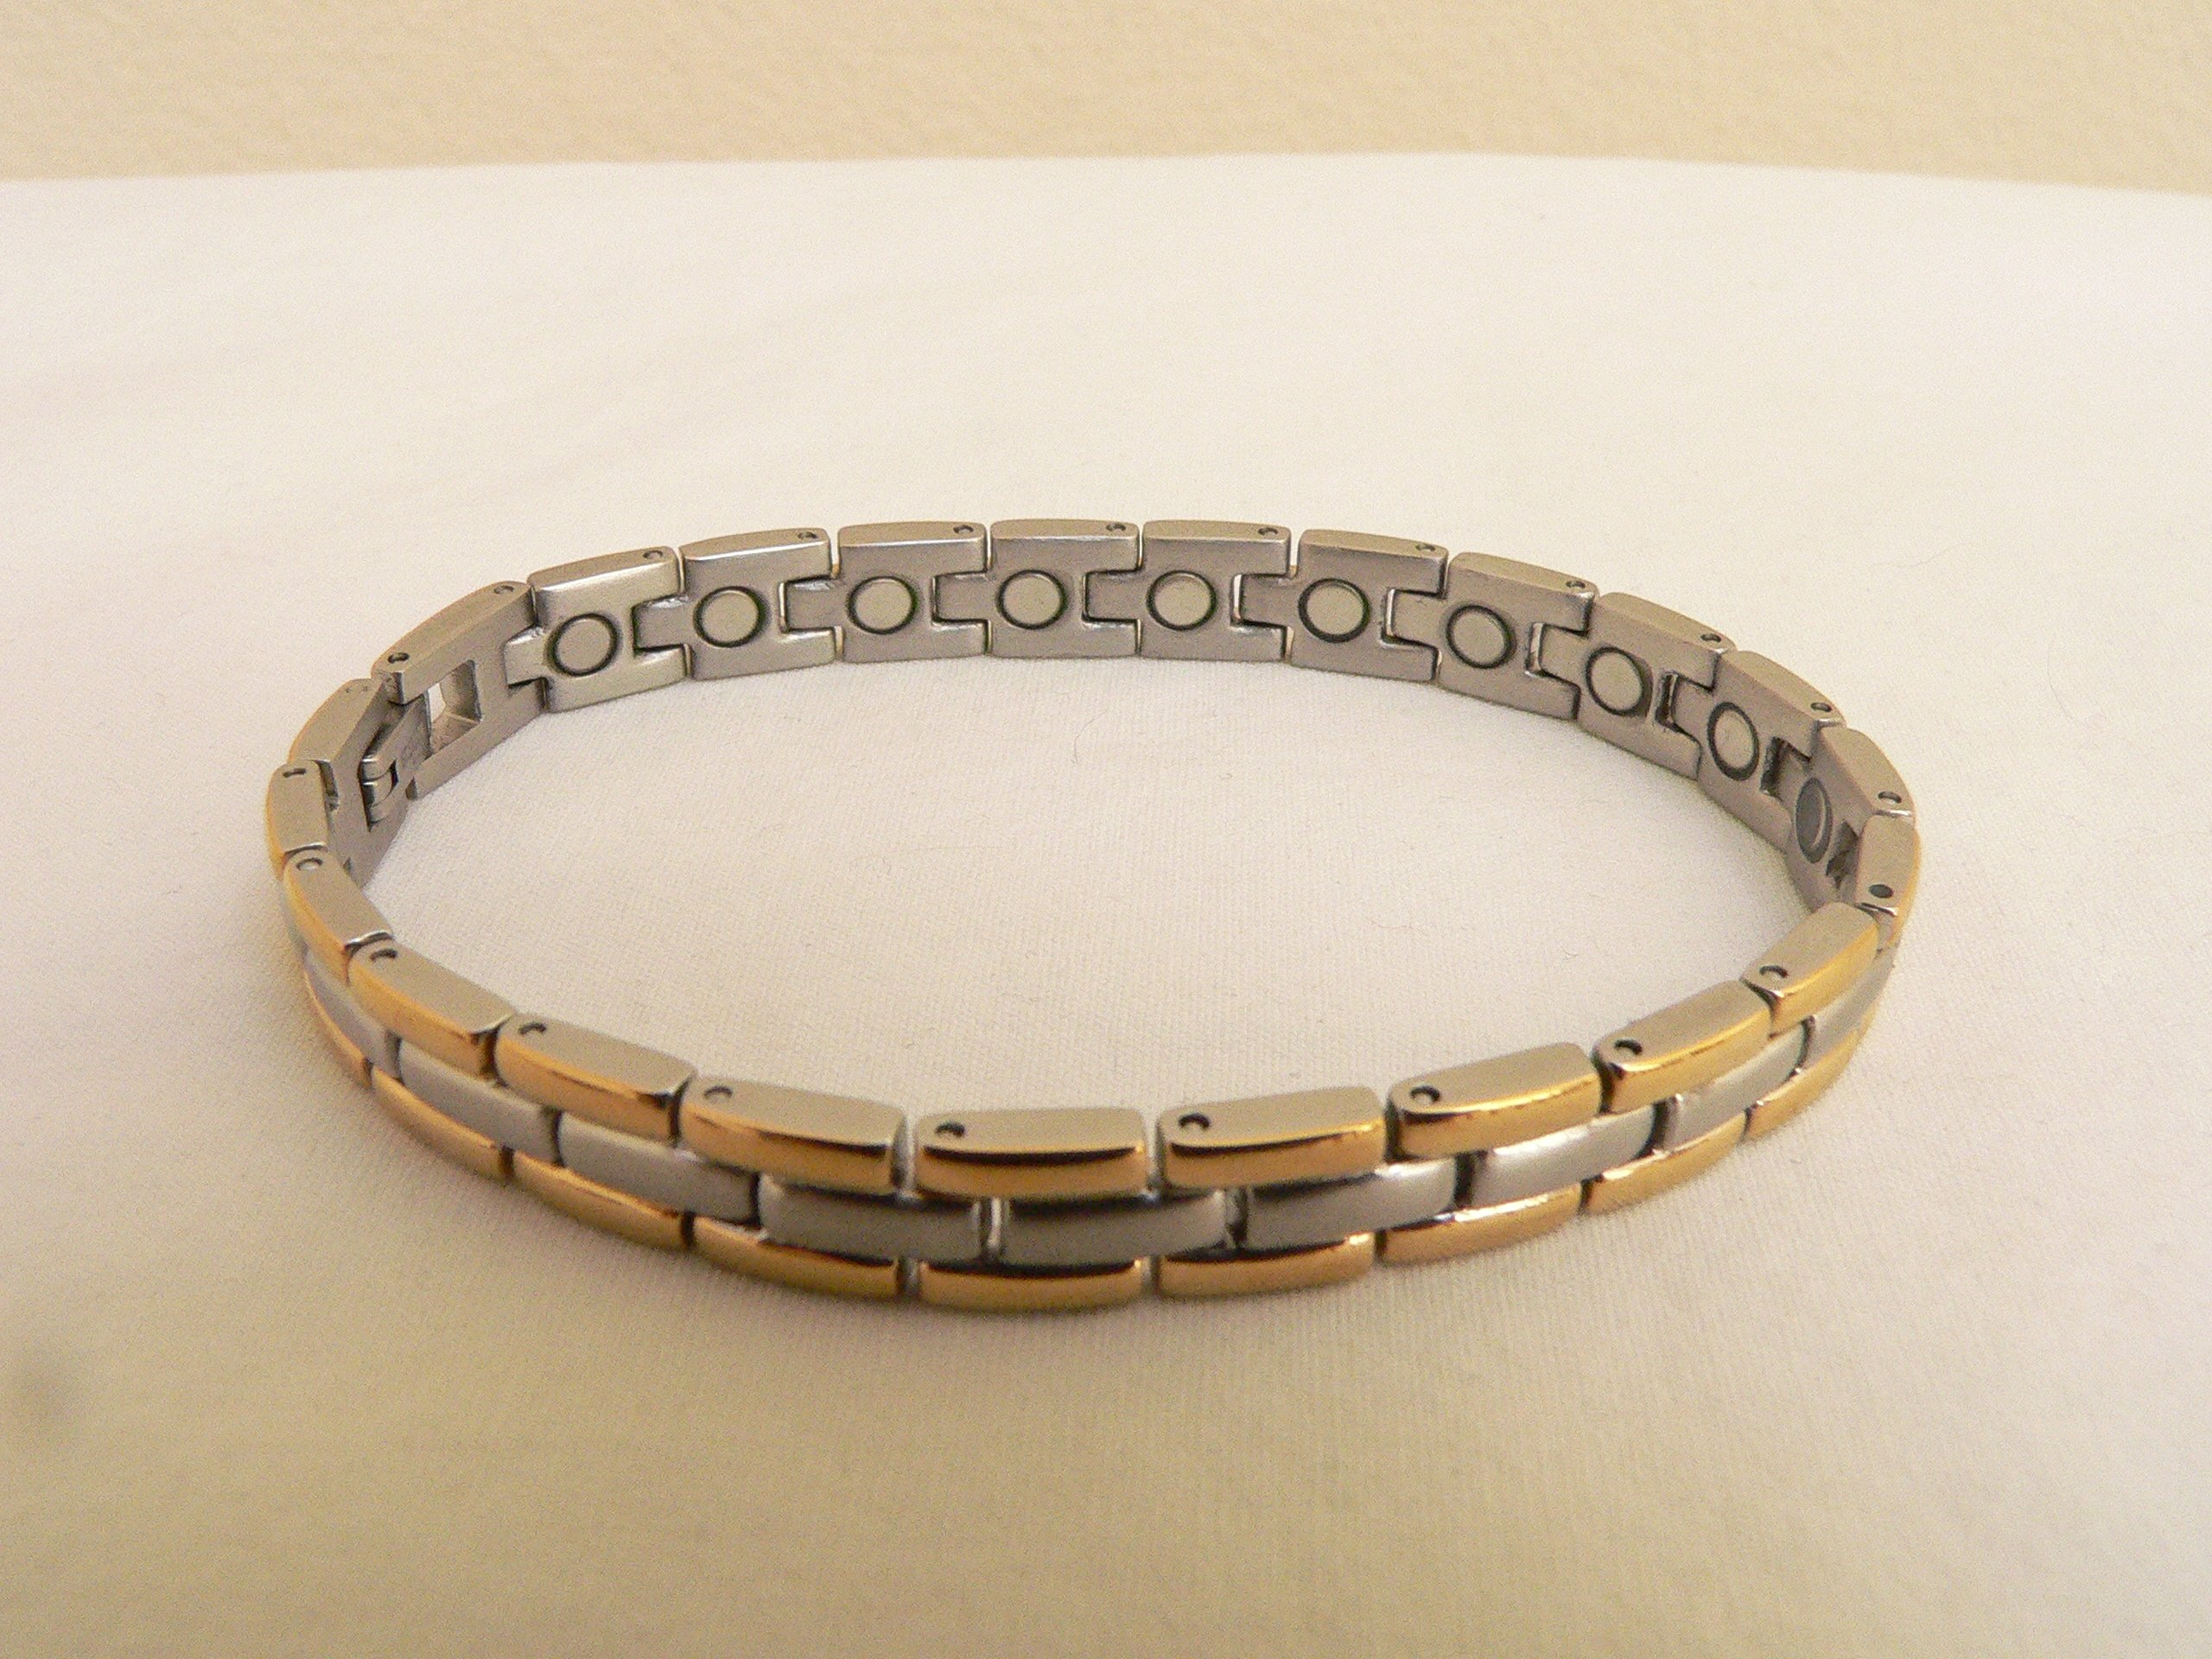 Magnetic Therapy Stainless Steel Magnetic Bracelet ~ Celebrities and Golfers Power Bracelet ~ Size: 7 3/4 Inch. Long, 1/4 Inch. Wide